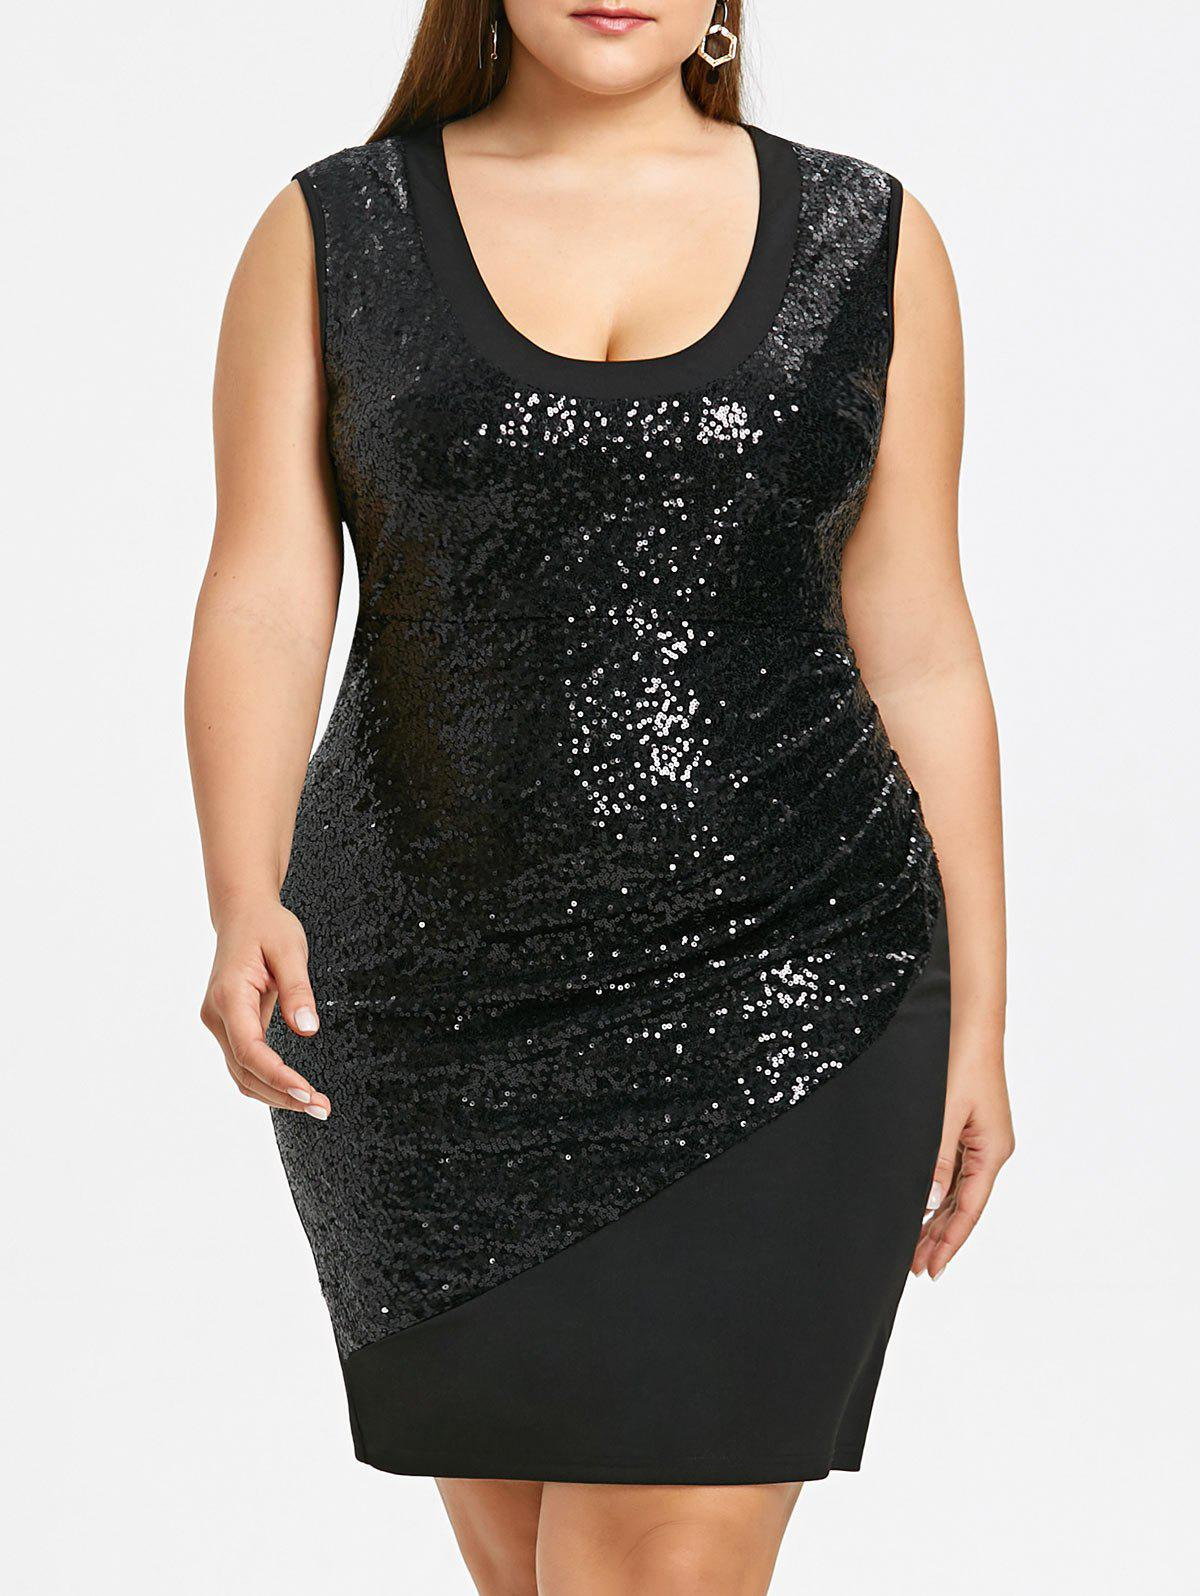 Plus Size Glitter Sequins Sleeveless Sheath Dress jones new york new gray sleeveless women s size 1x plus sheath dress $109